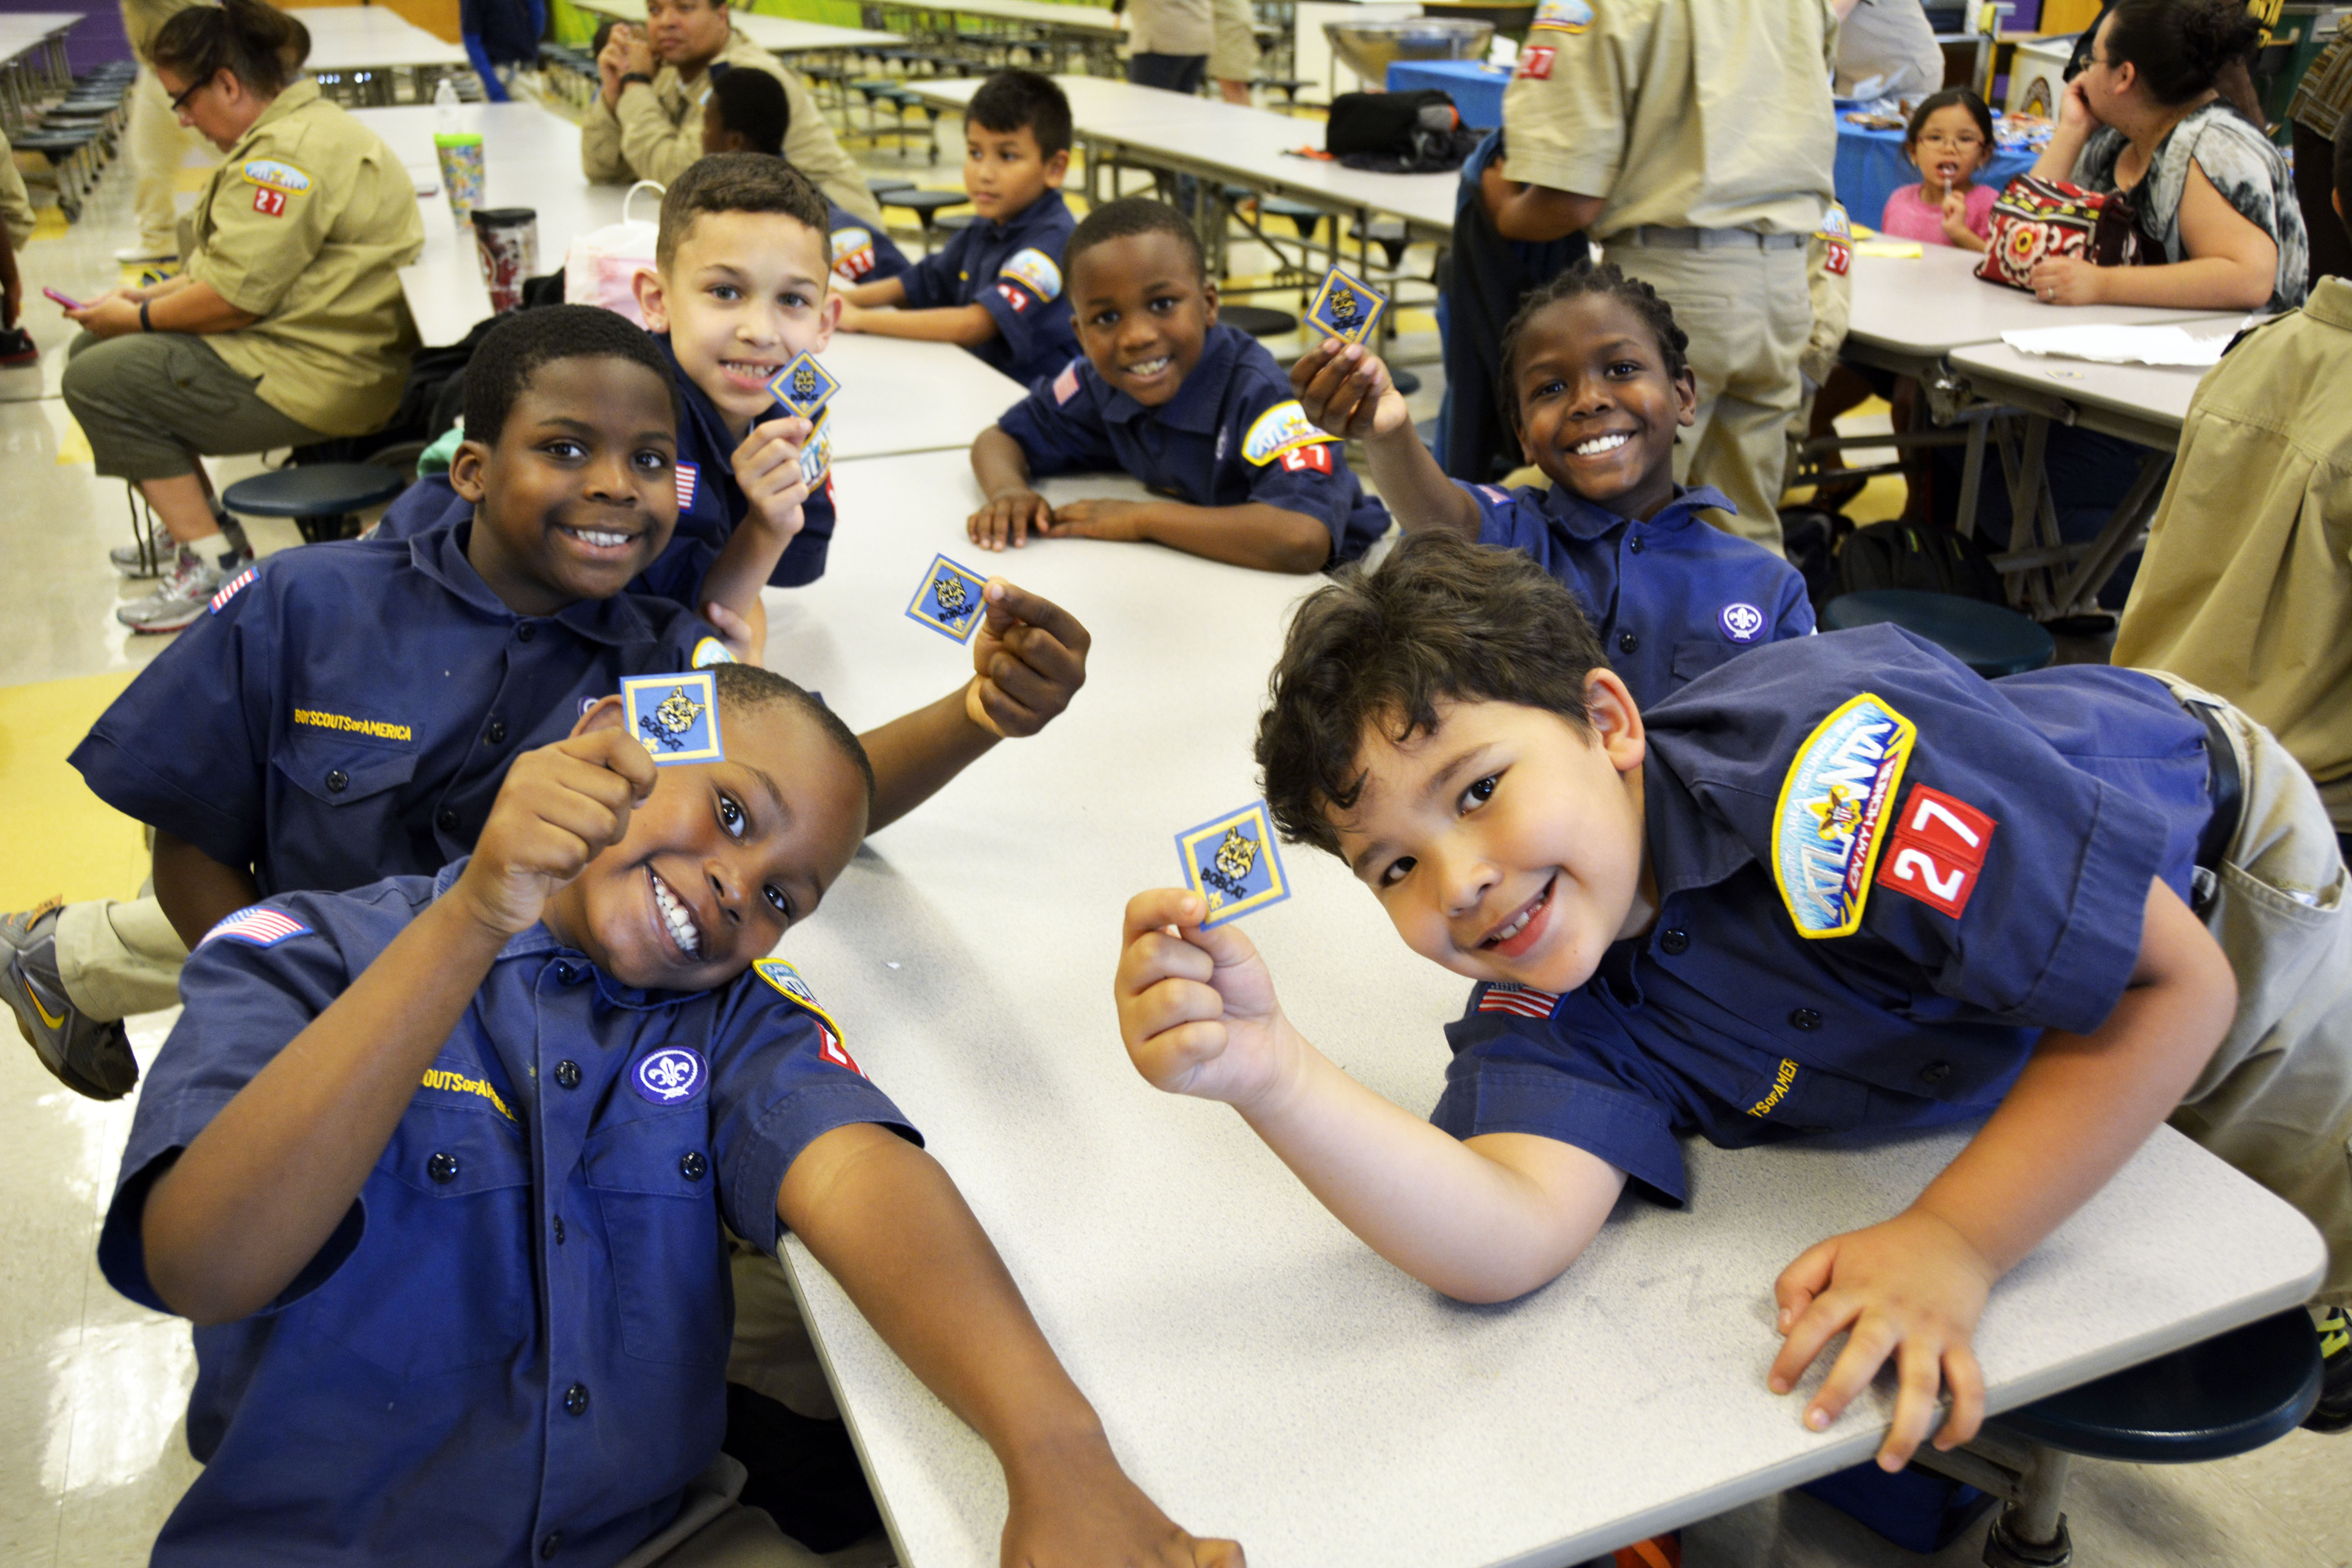 New Cub Scouts show off their Bobcat Badges